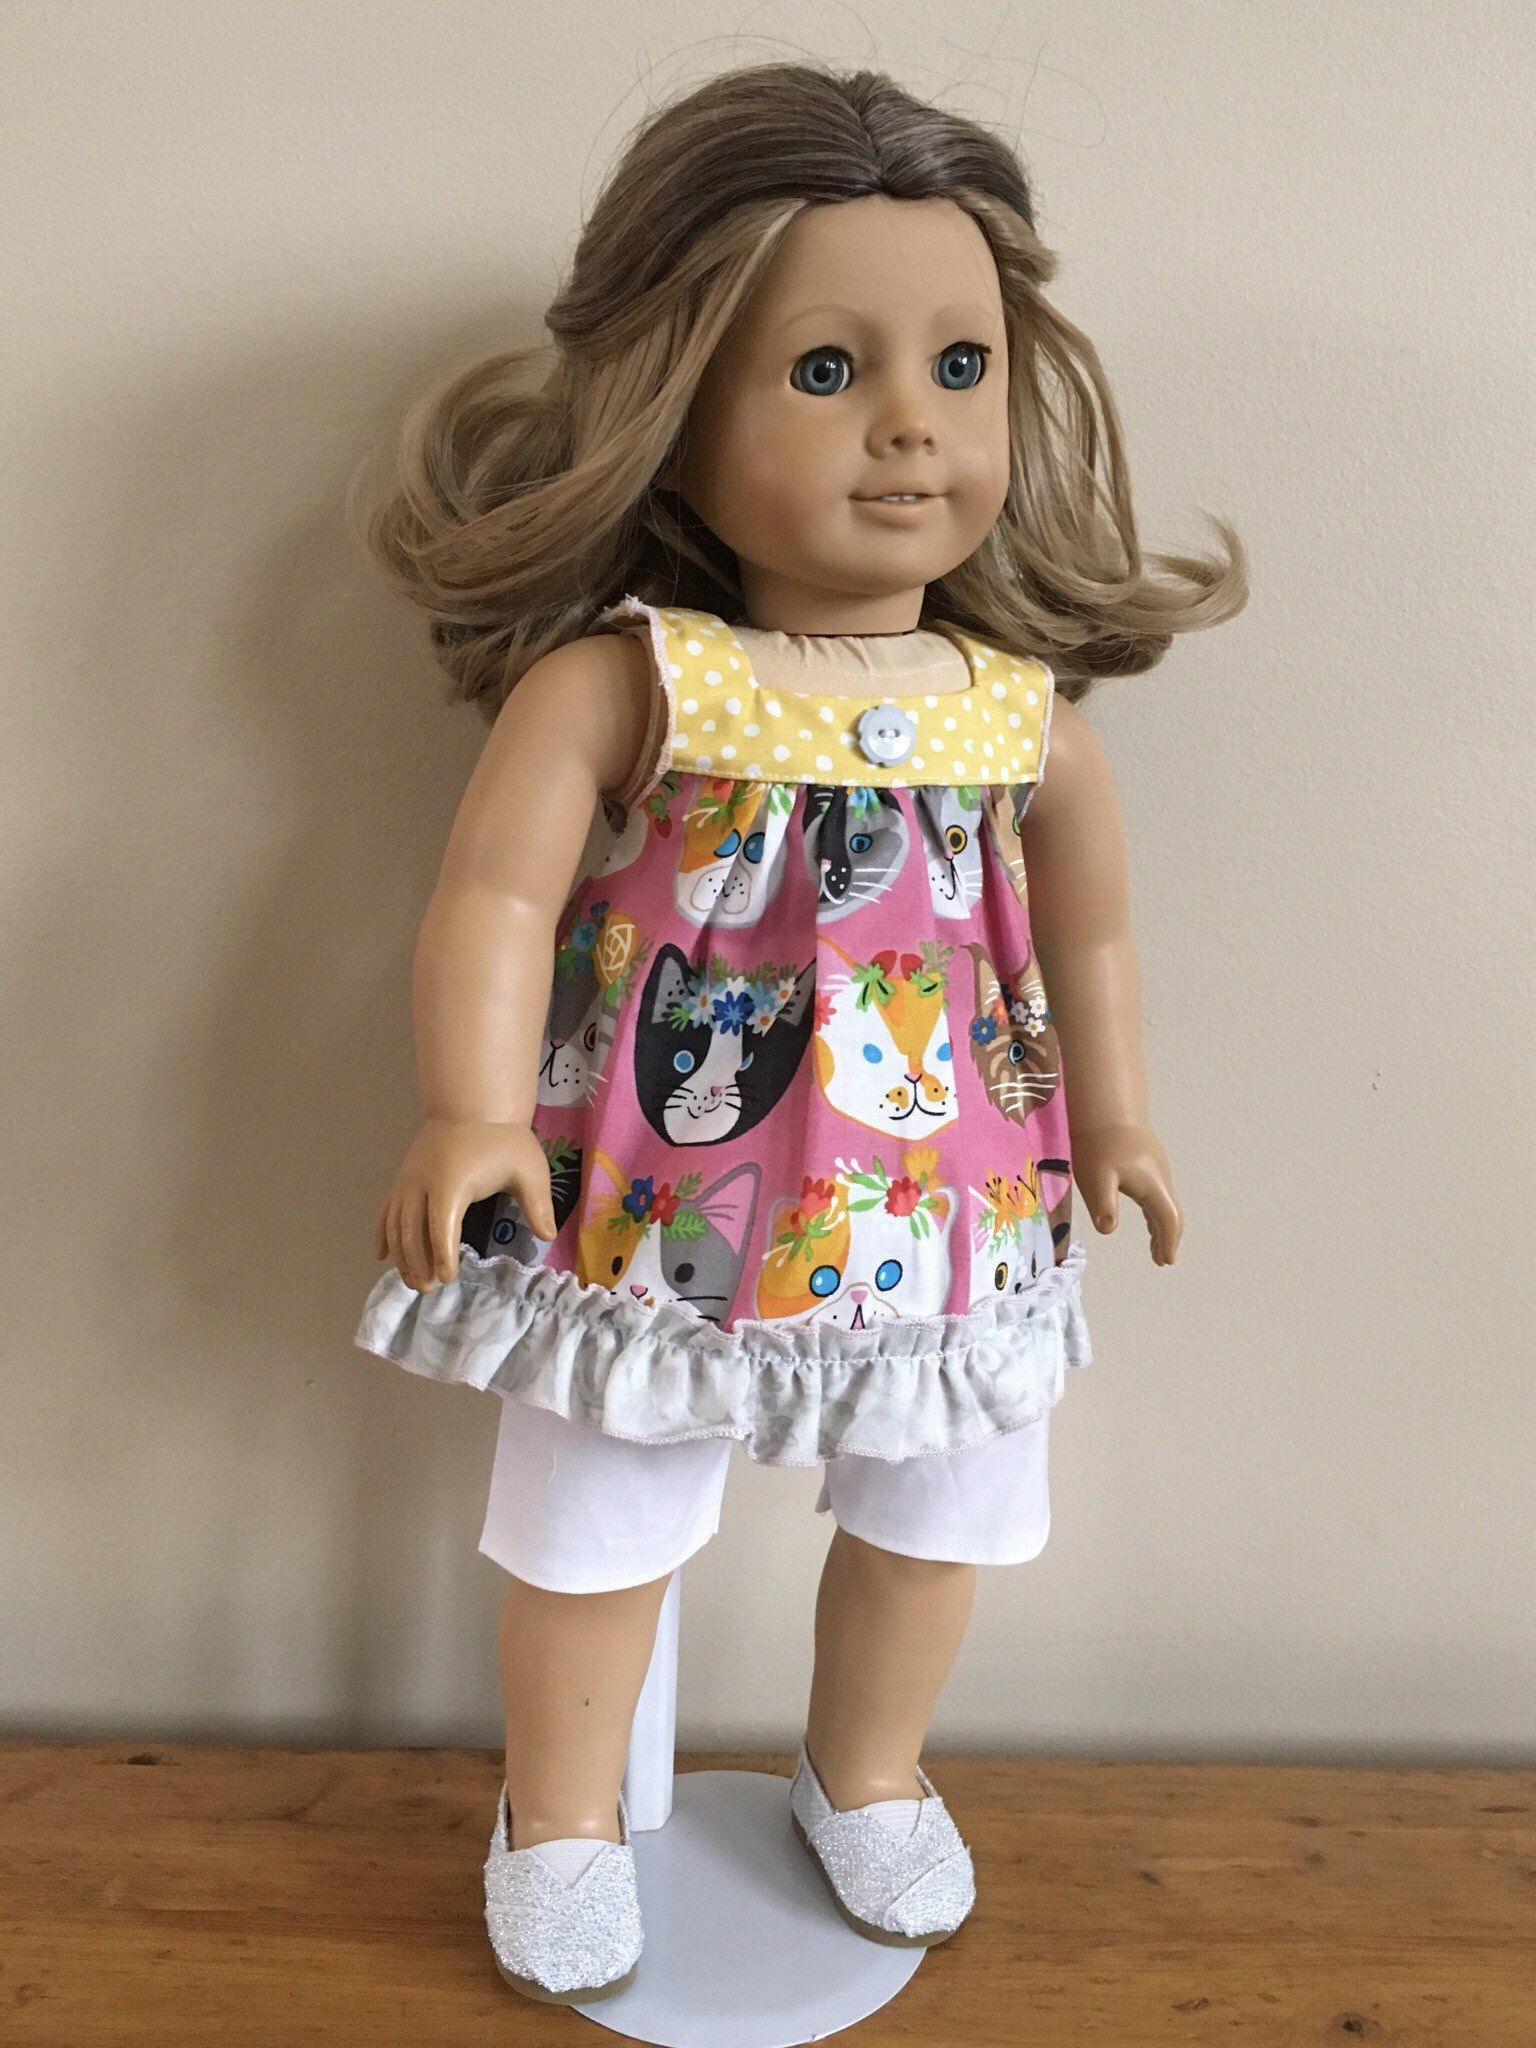 Pin on 18 Inch Doll Ideas